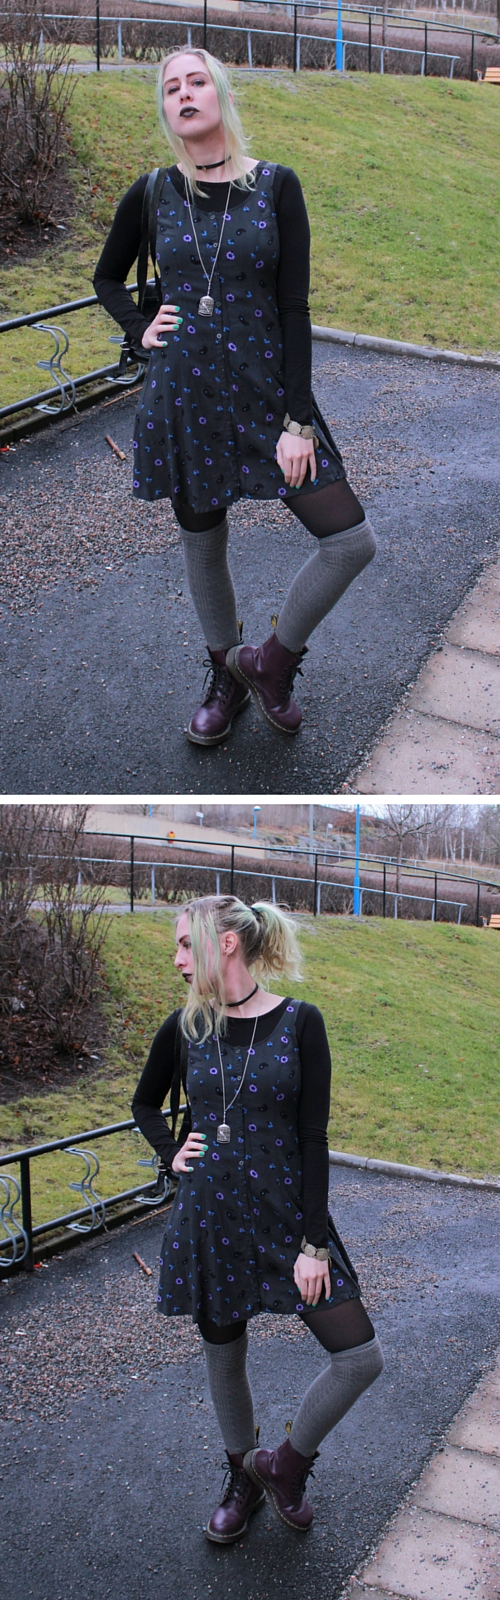 nineties inspired outfit